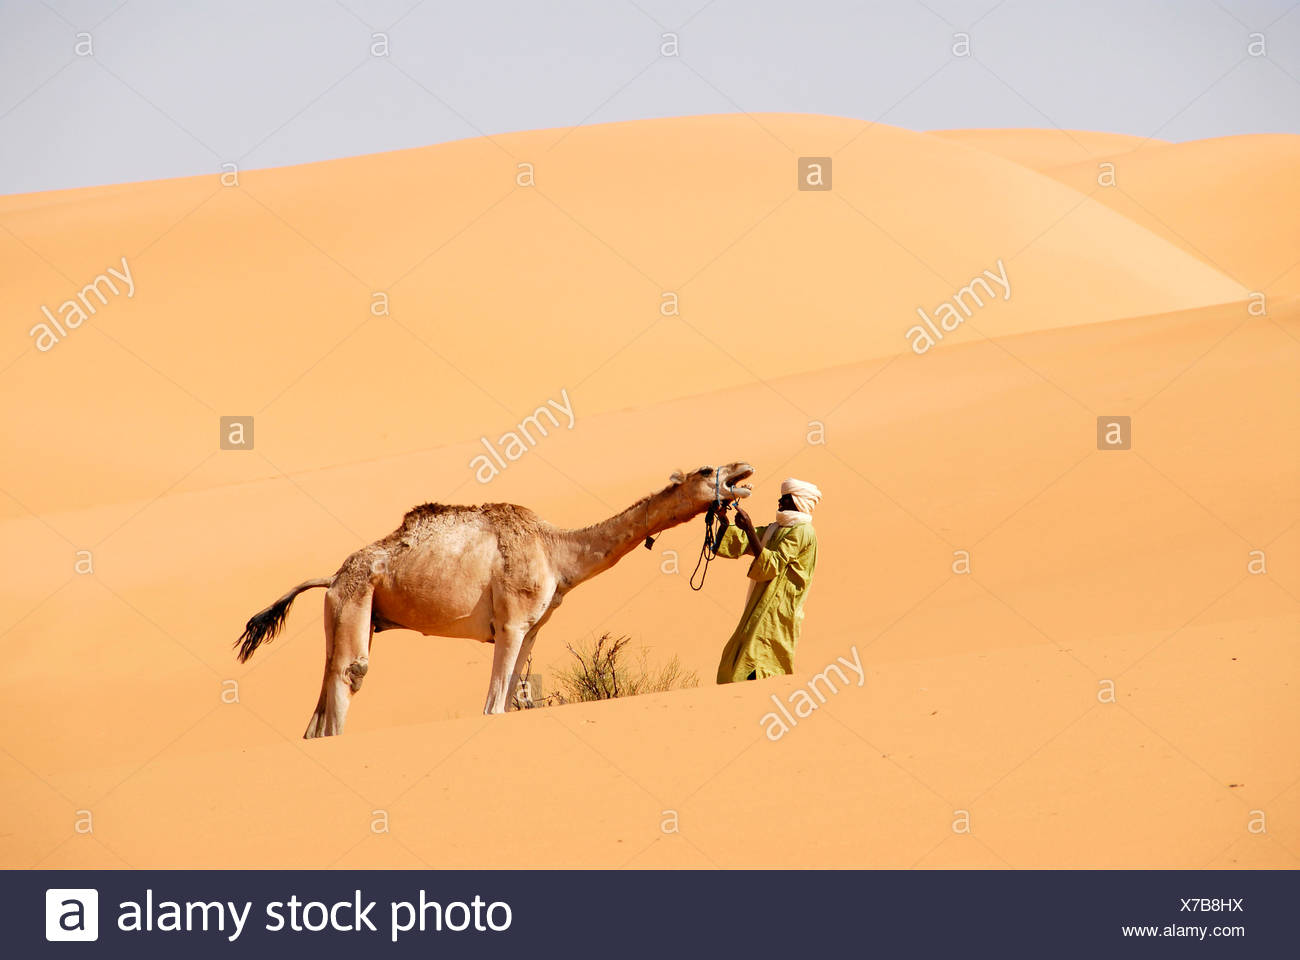 Protest Tuareg tries to hold a camel in the desert Mandara Libya - Stock Image